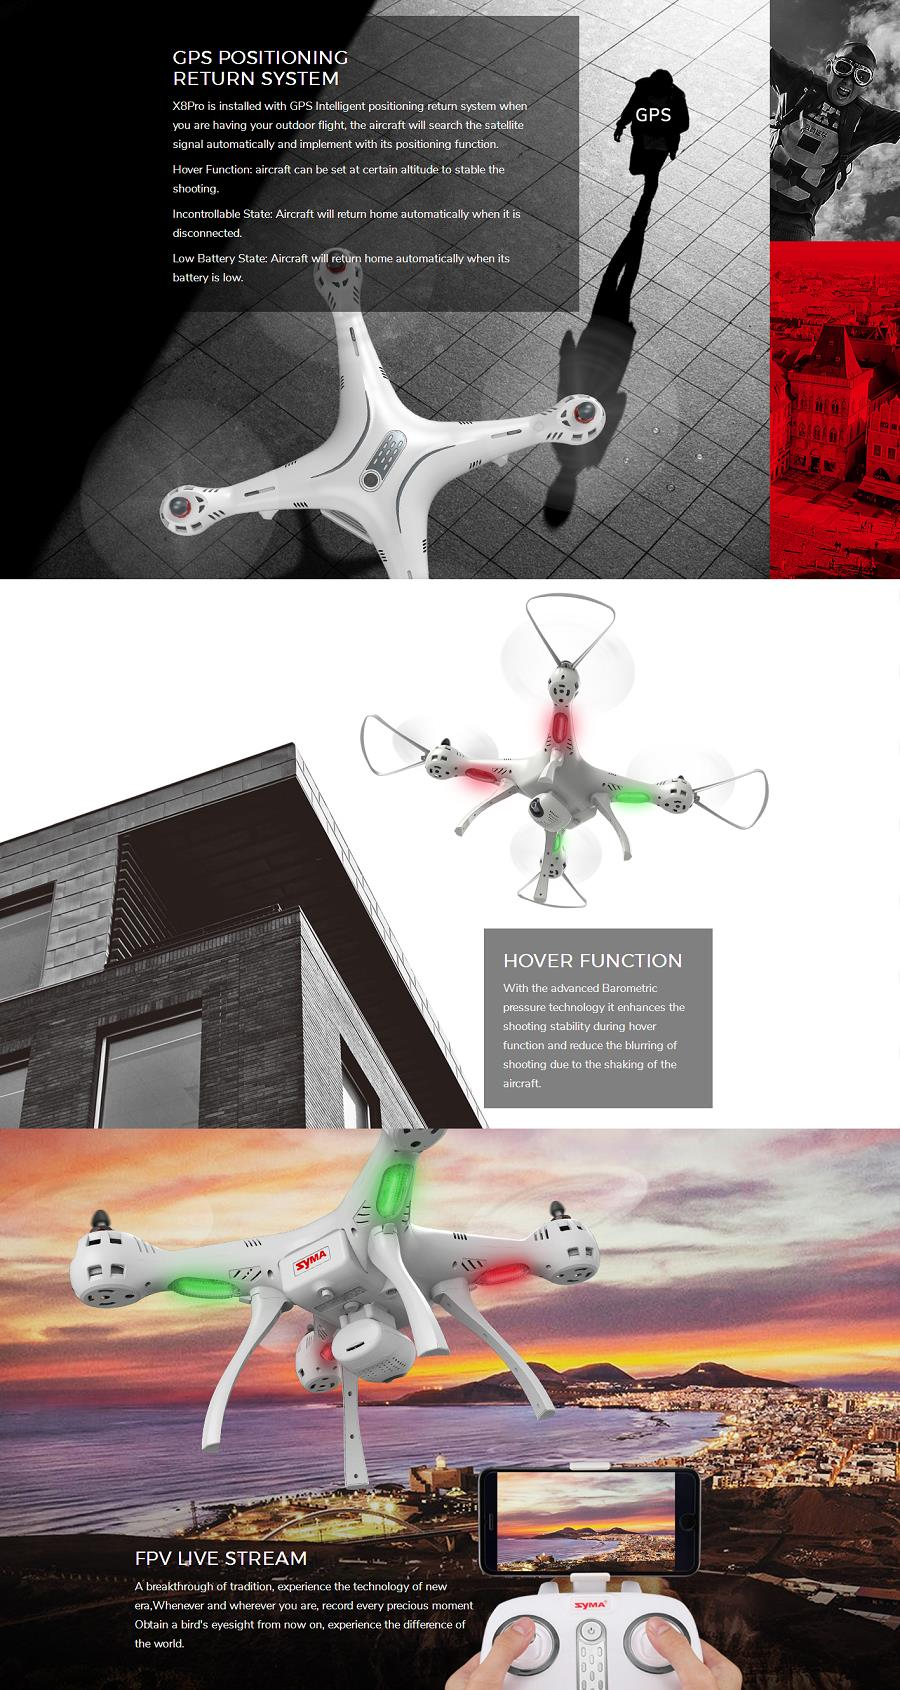 Want To Fly The Syma X8 Pro Drone Get It Today For Just R3499 In Wifi Fpv Drore Gps Auto Return Brand Namesyma Modelx8pro Frequency24g Channel4ch Gyro6 Axis Colorwhite Camera Photo Video 03mp Sd Card 1mp